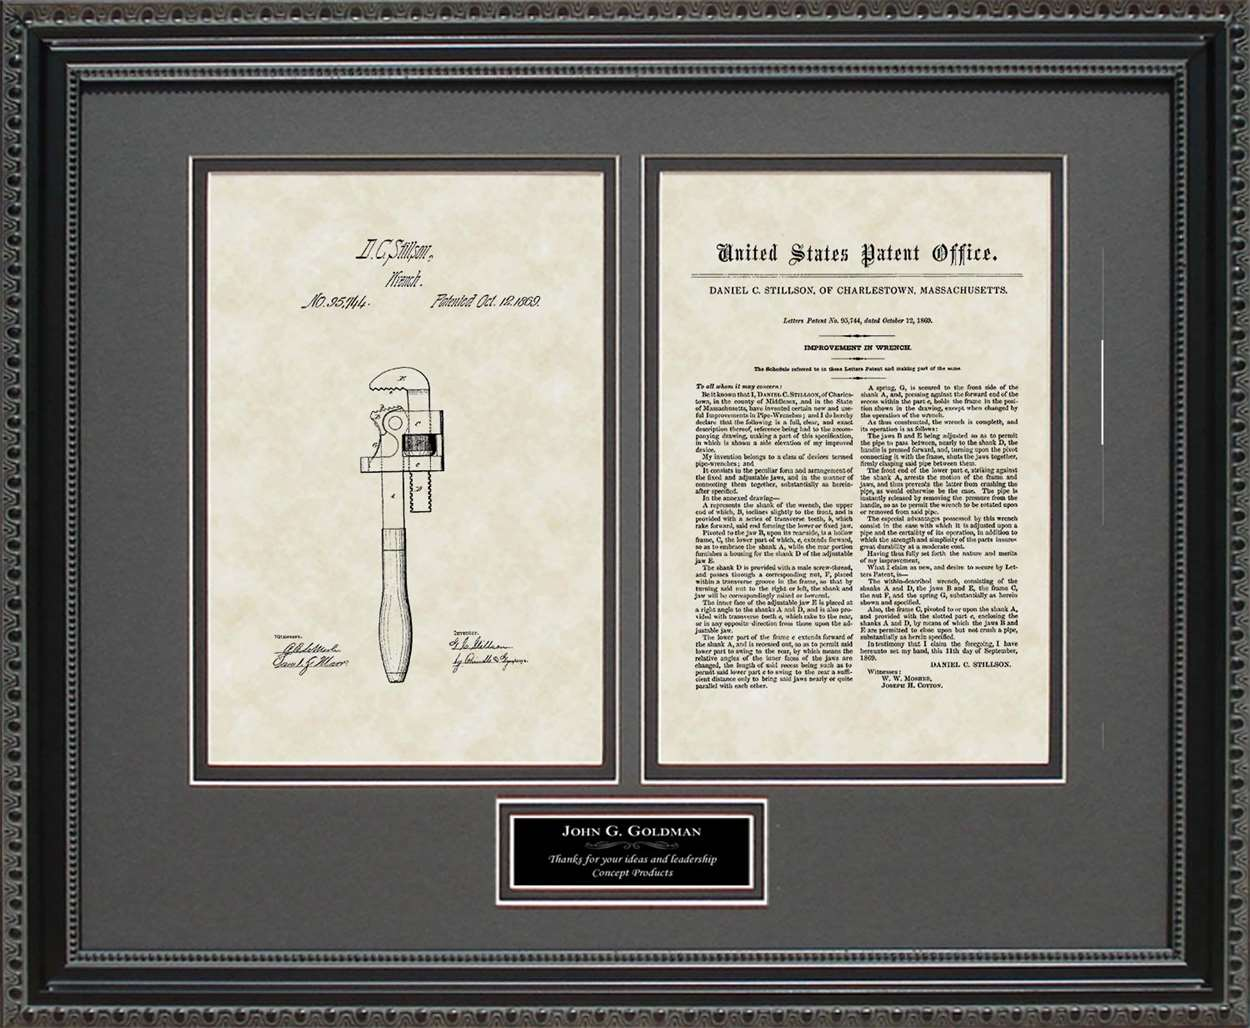 Personalized Pipe Wrench Patent, Art & Copy, Stillson, 1869